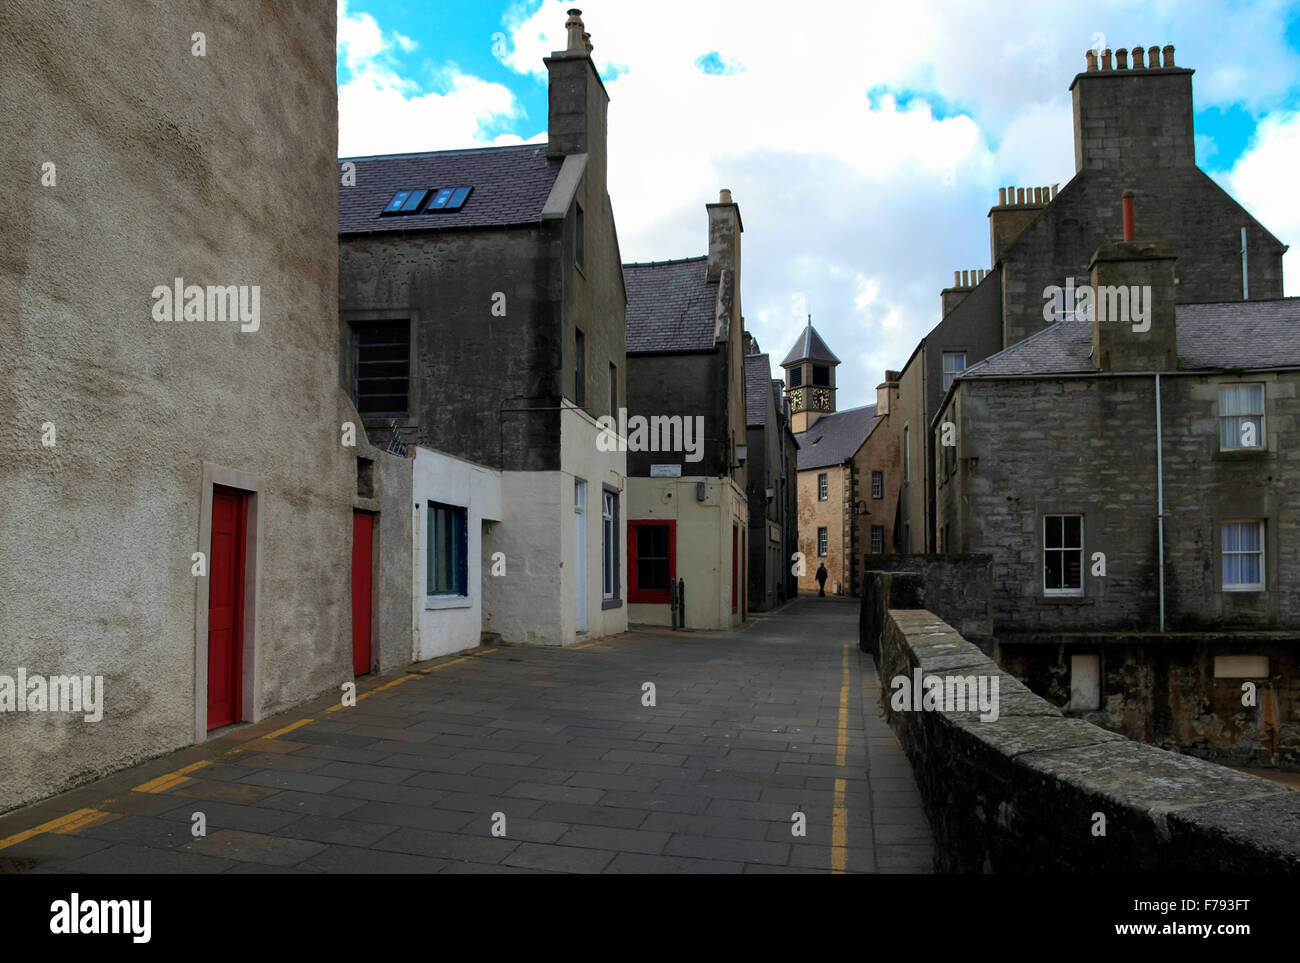 Commercial Street Lerwick Old Town Shetland Islands Scotland UK Stock Photo